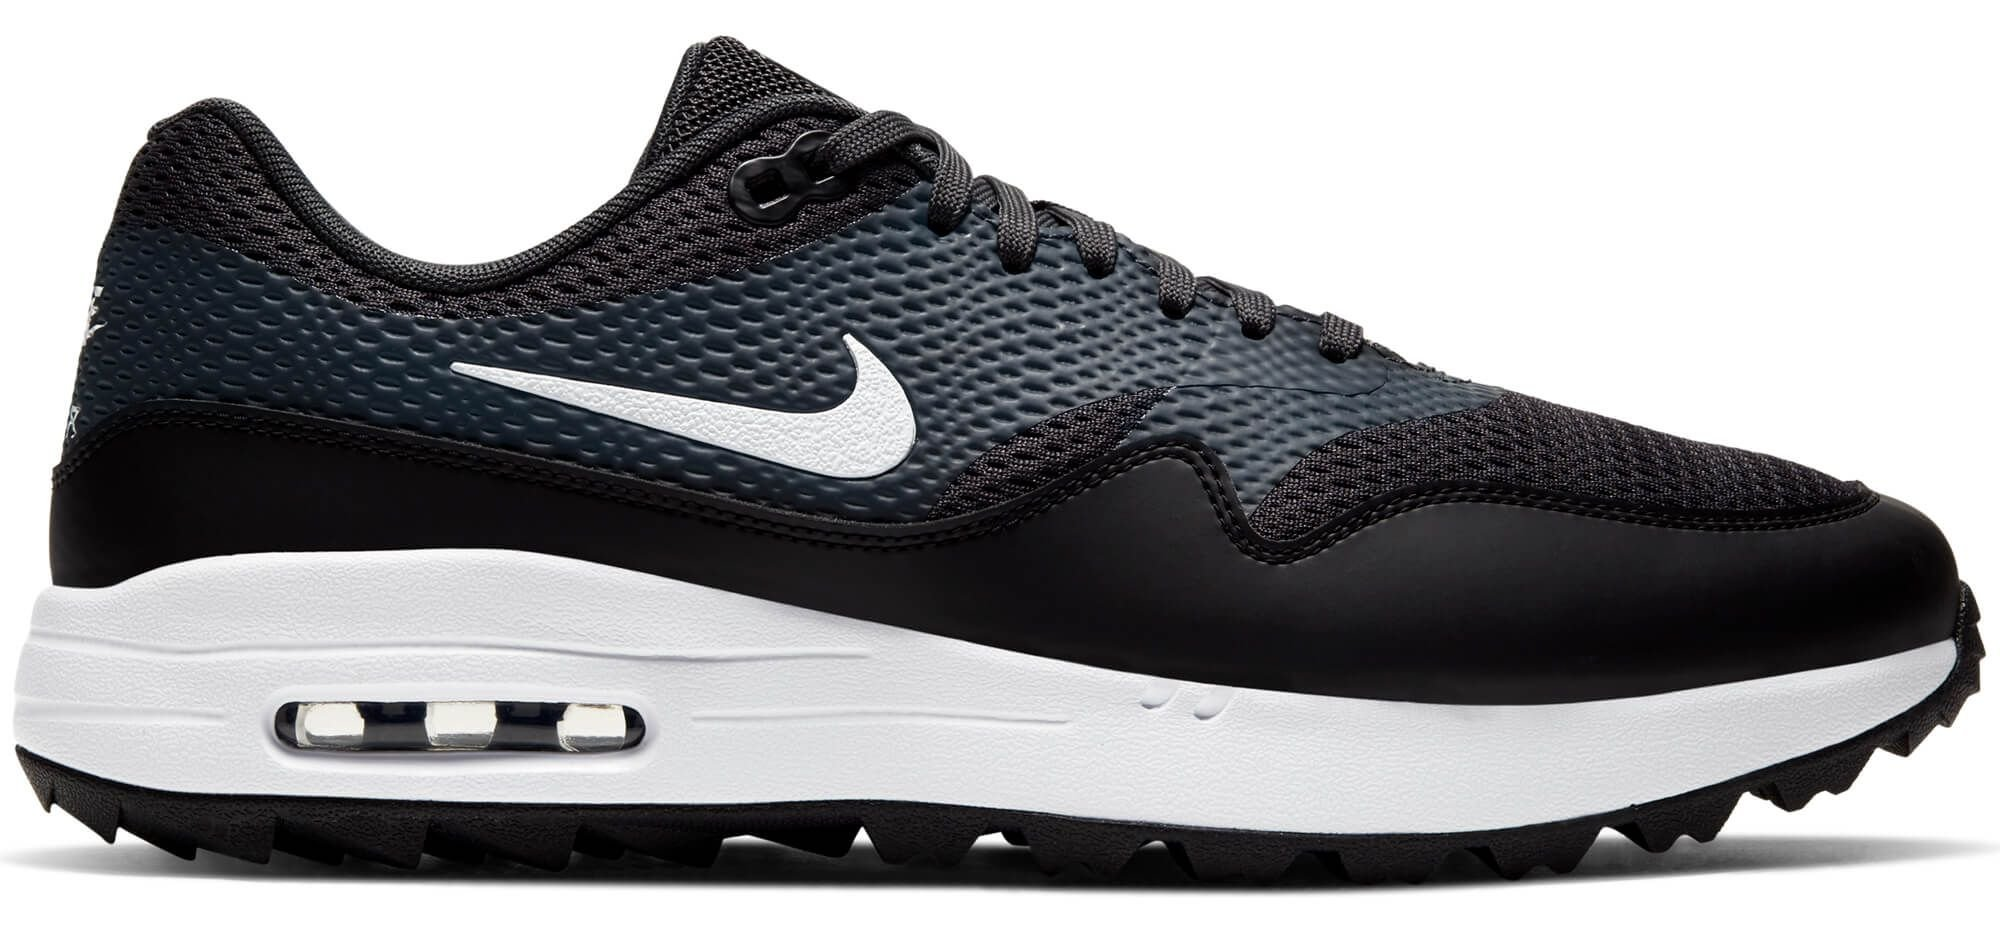 Nike Air Max 1 G Golf Shoes Black/Anthracite/White - Carl's Golfland